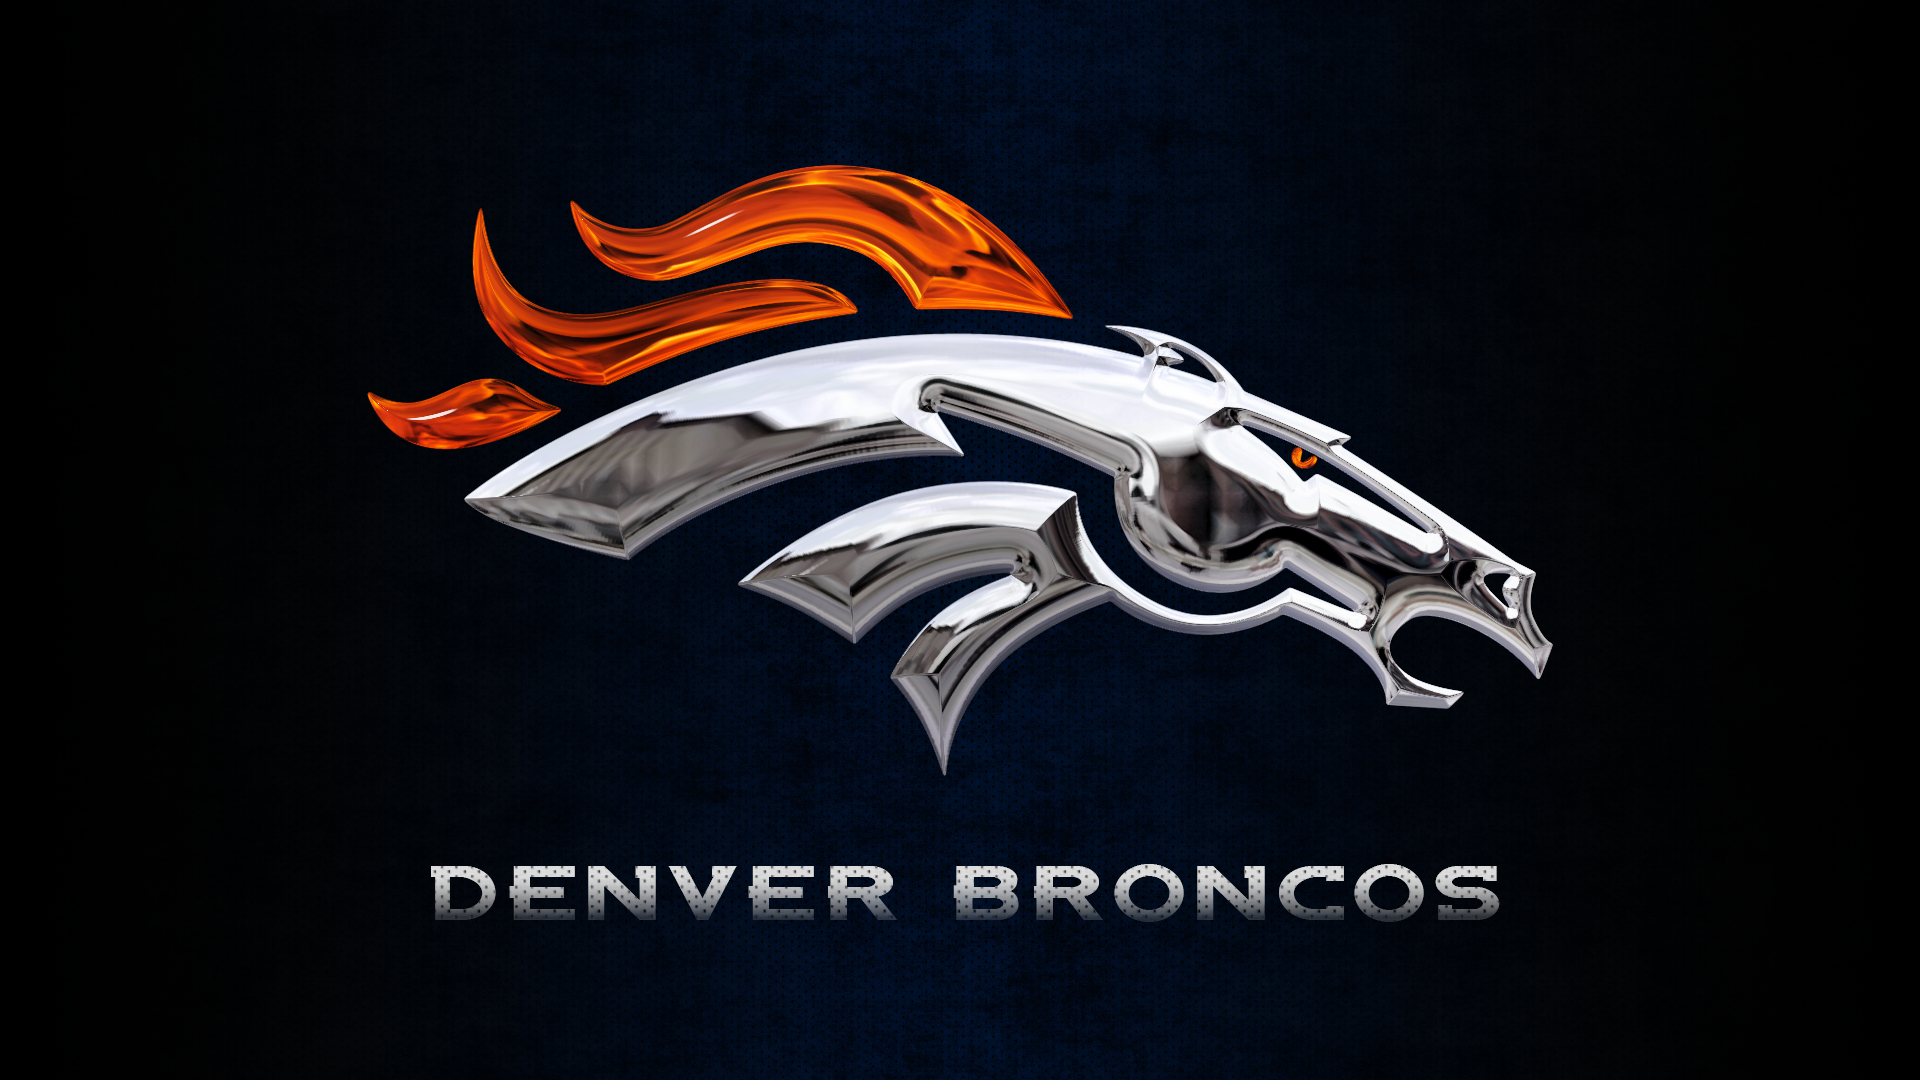 Housh 39 s wallpaper gallery page 7 - Denver broncos background ...